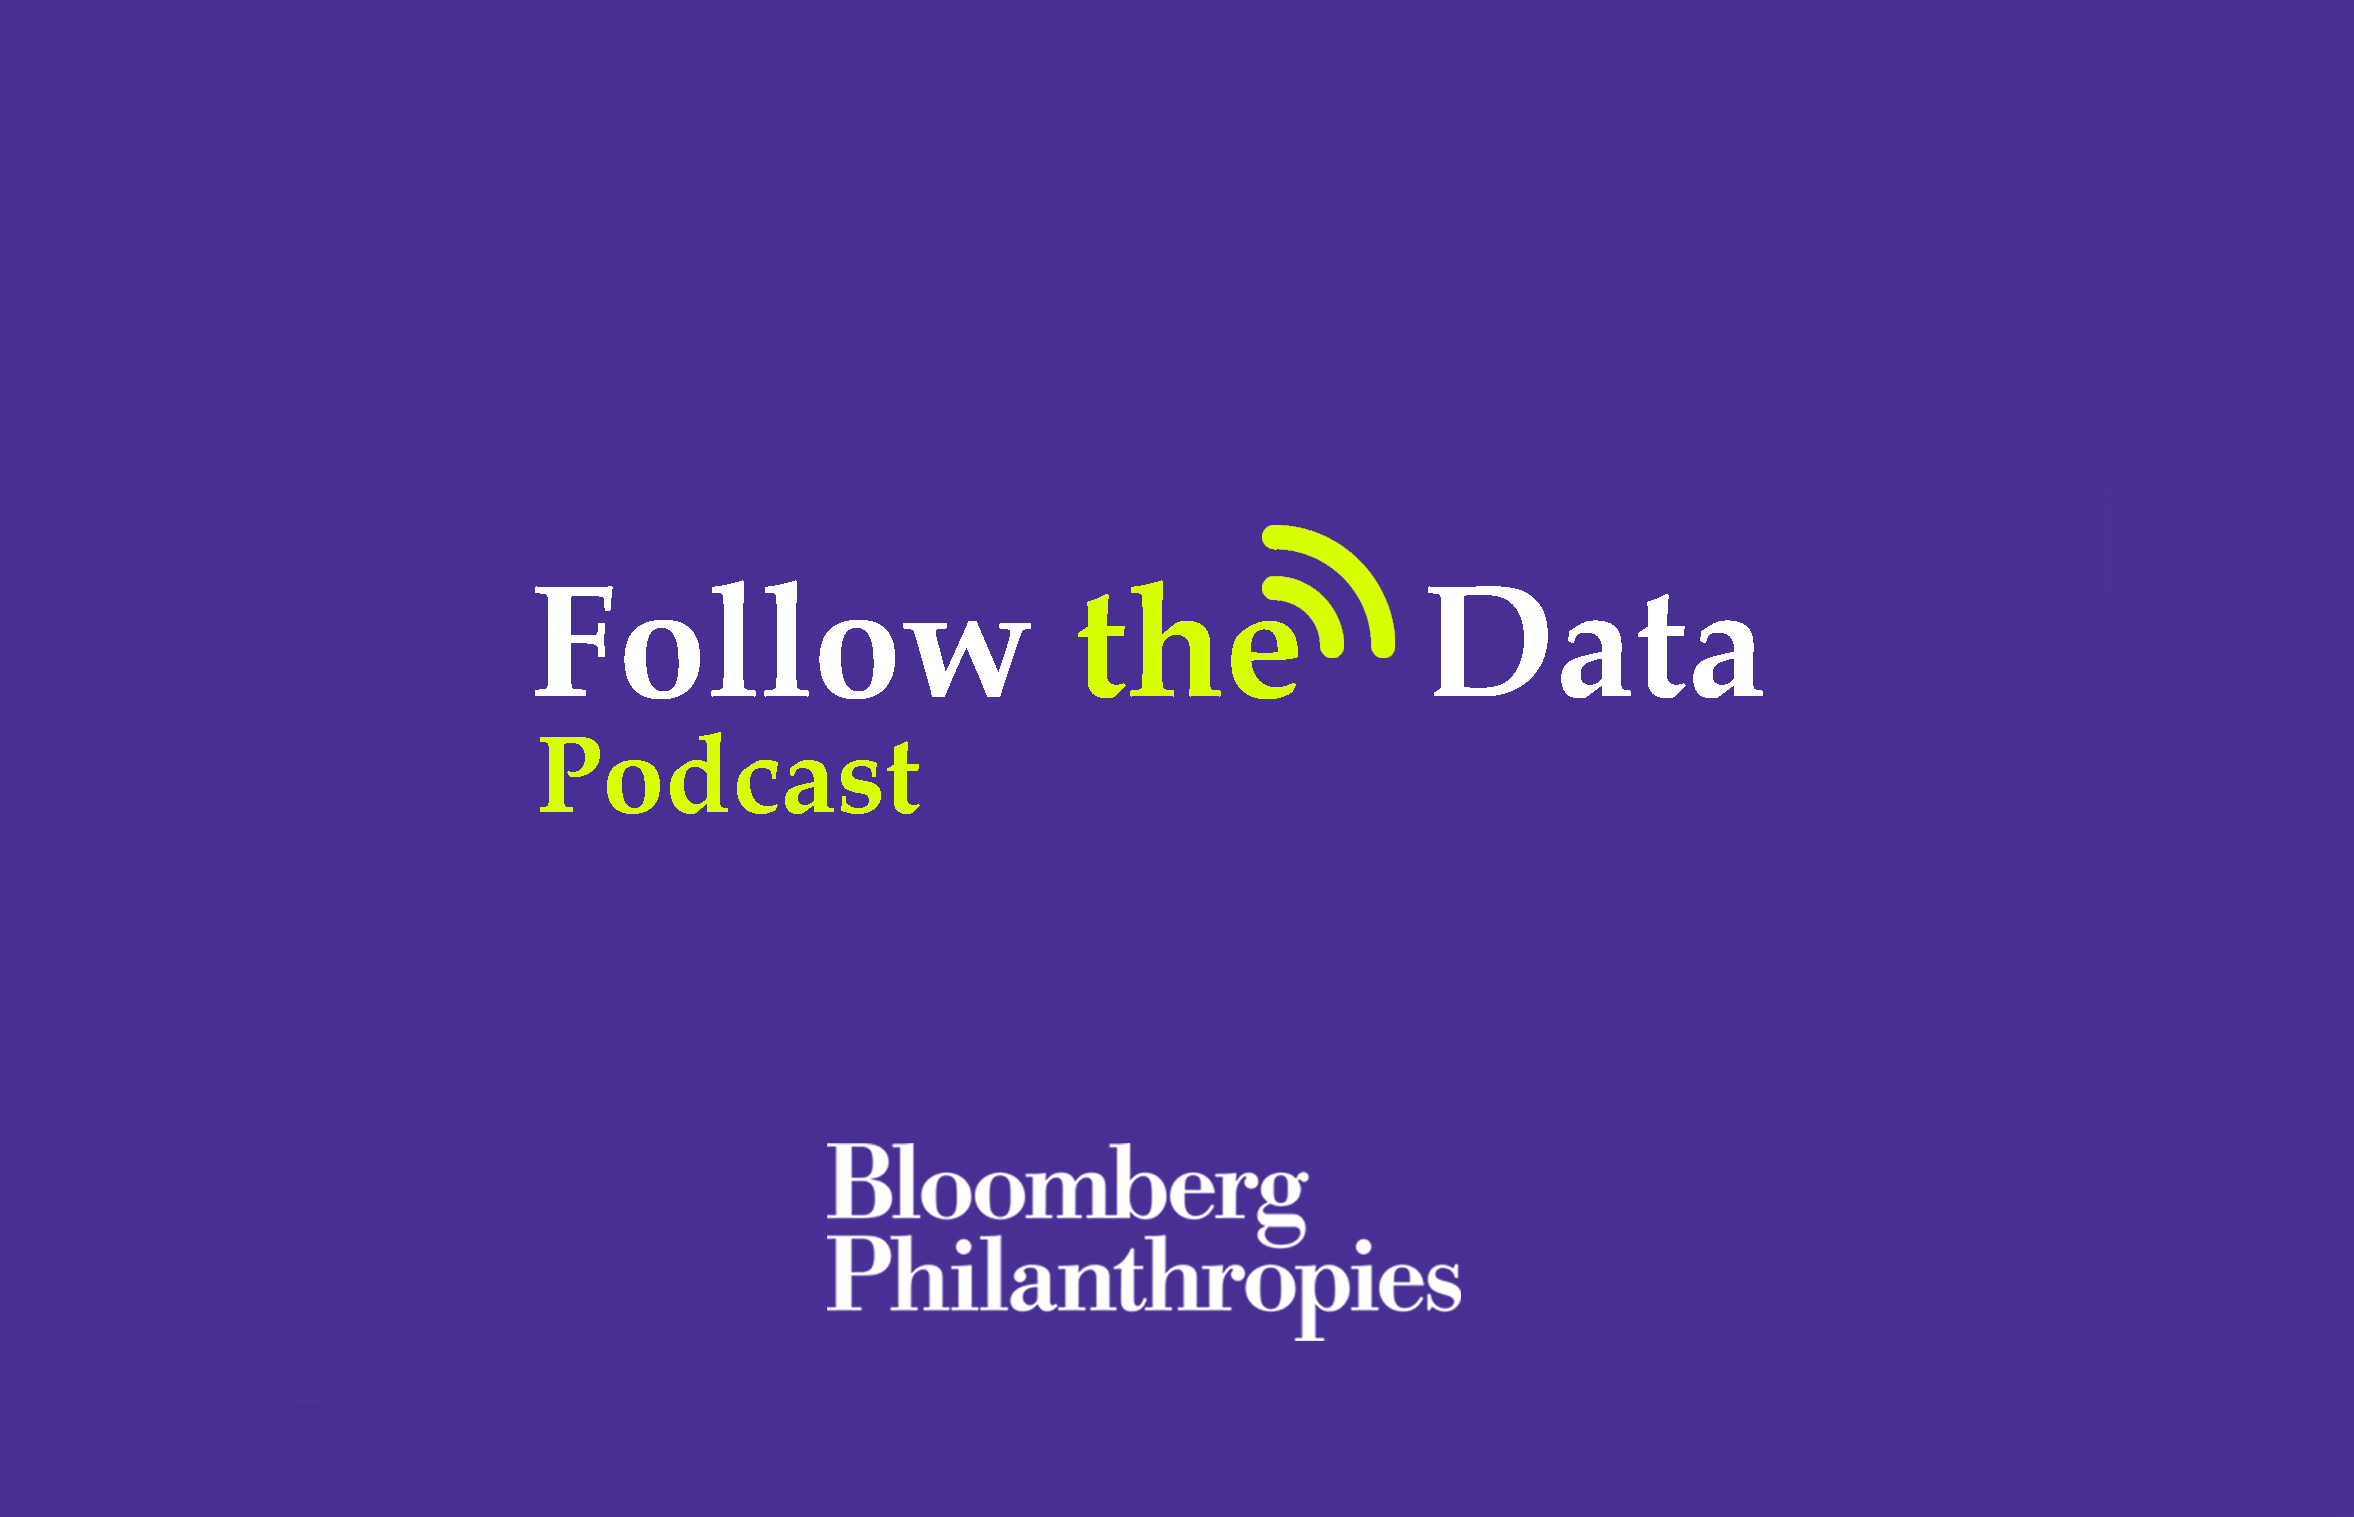 follow the data podcast episode 2 featuring the brooklyn